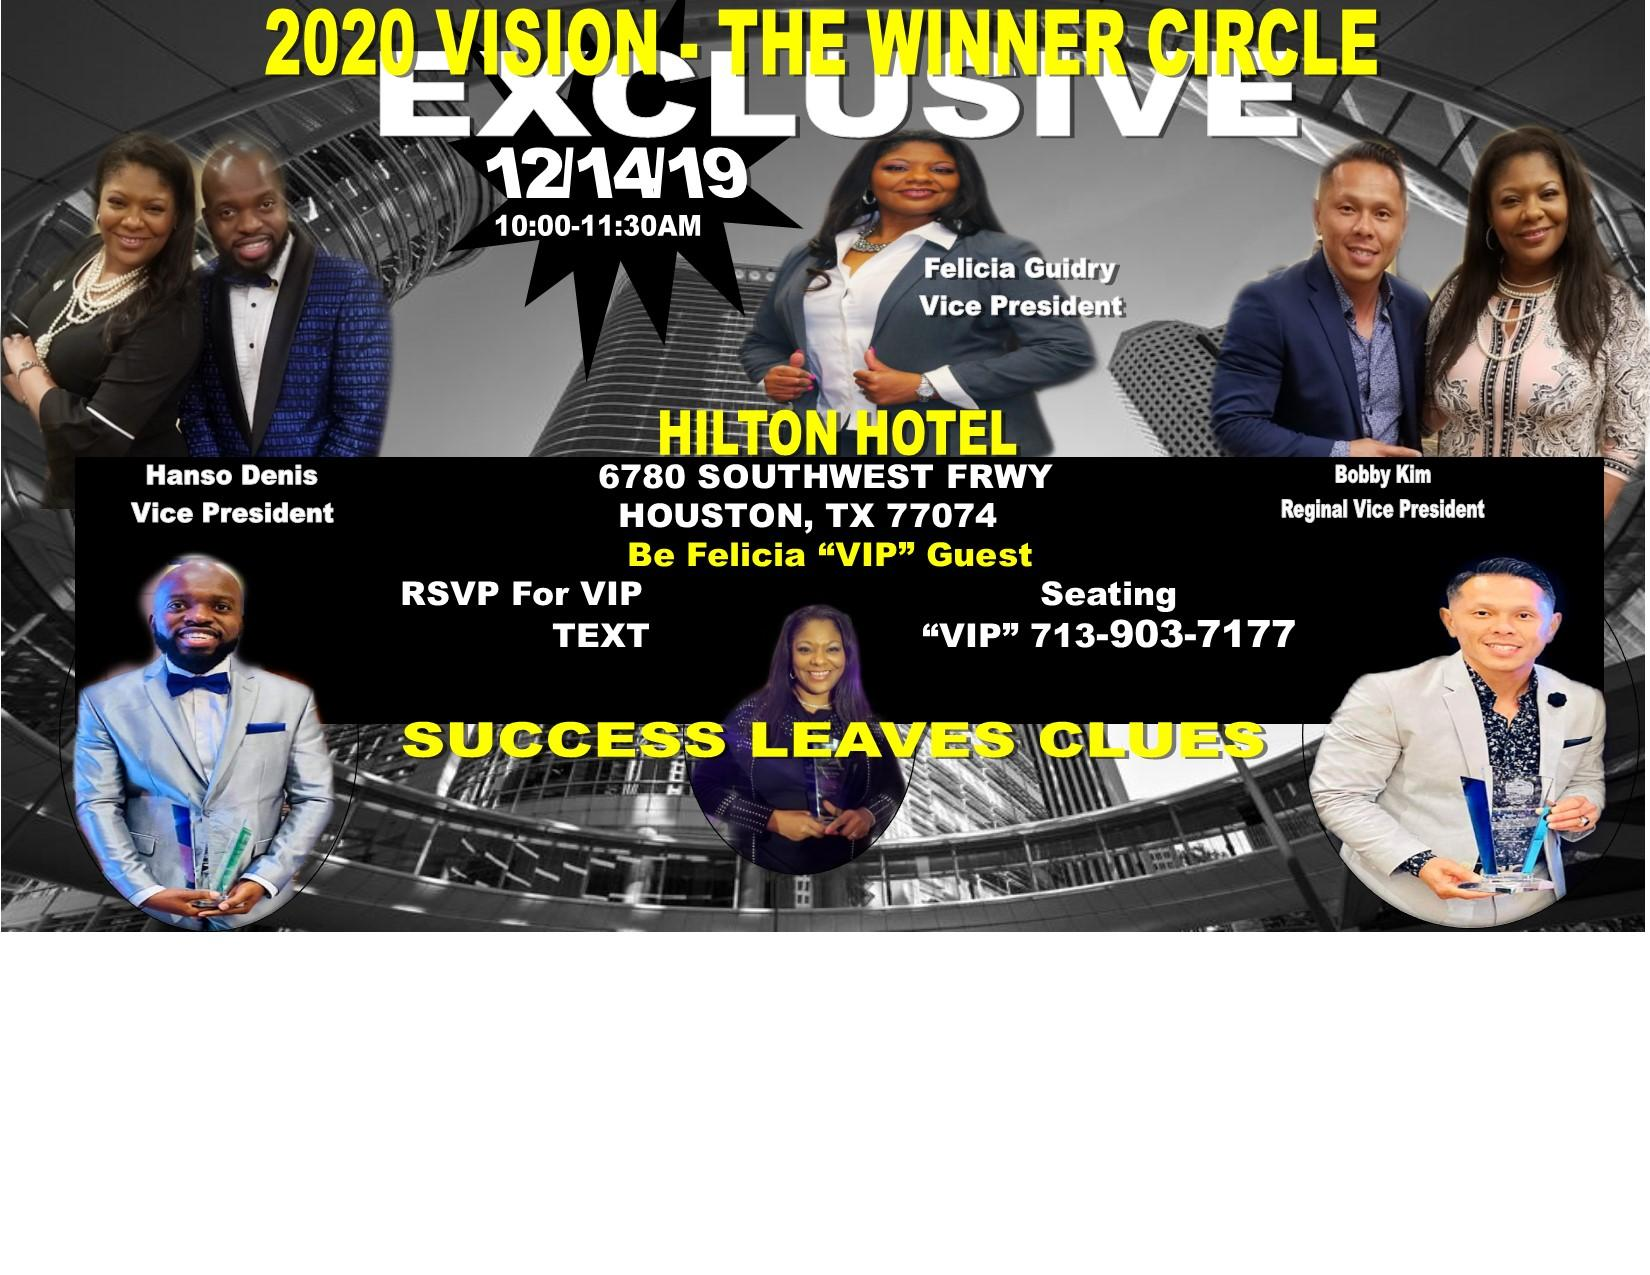 2020 Vision EXCLUSIVE ONE DAY ONLY Winner Circle with -Felicia Guidry